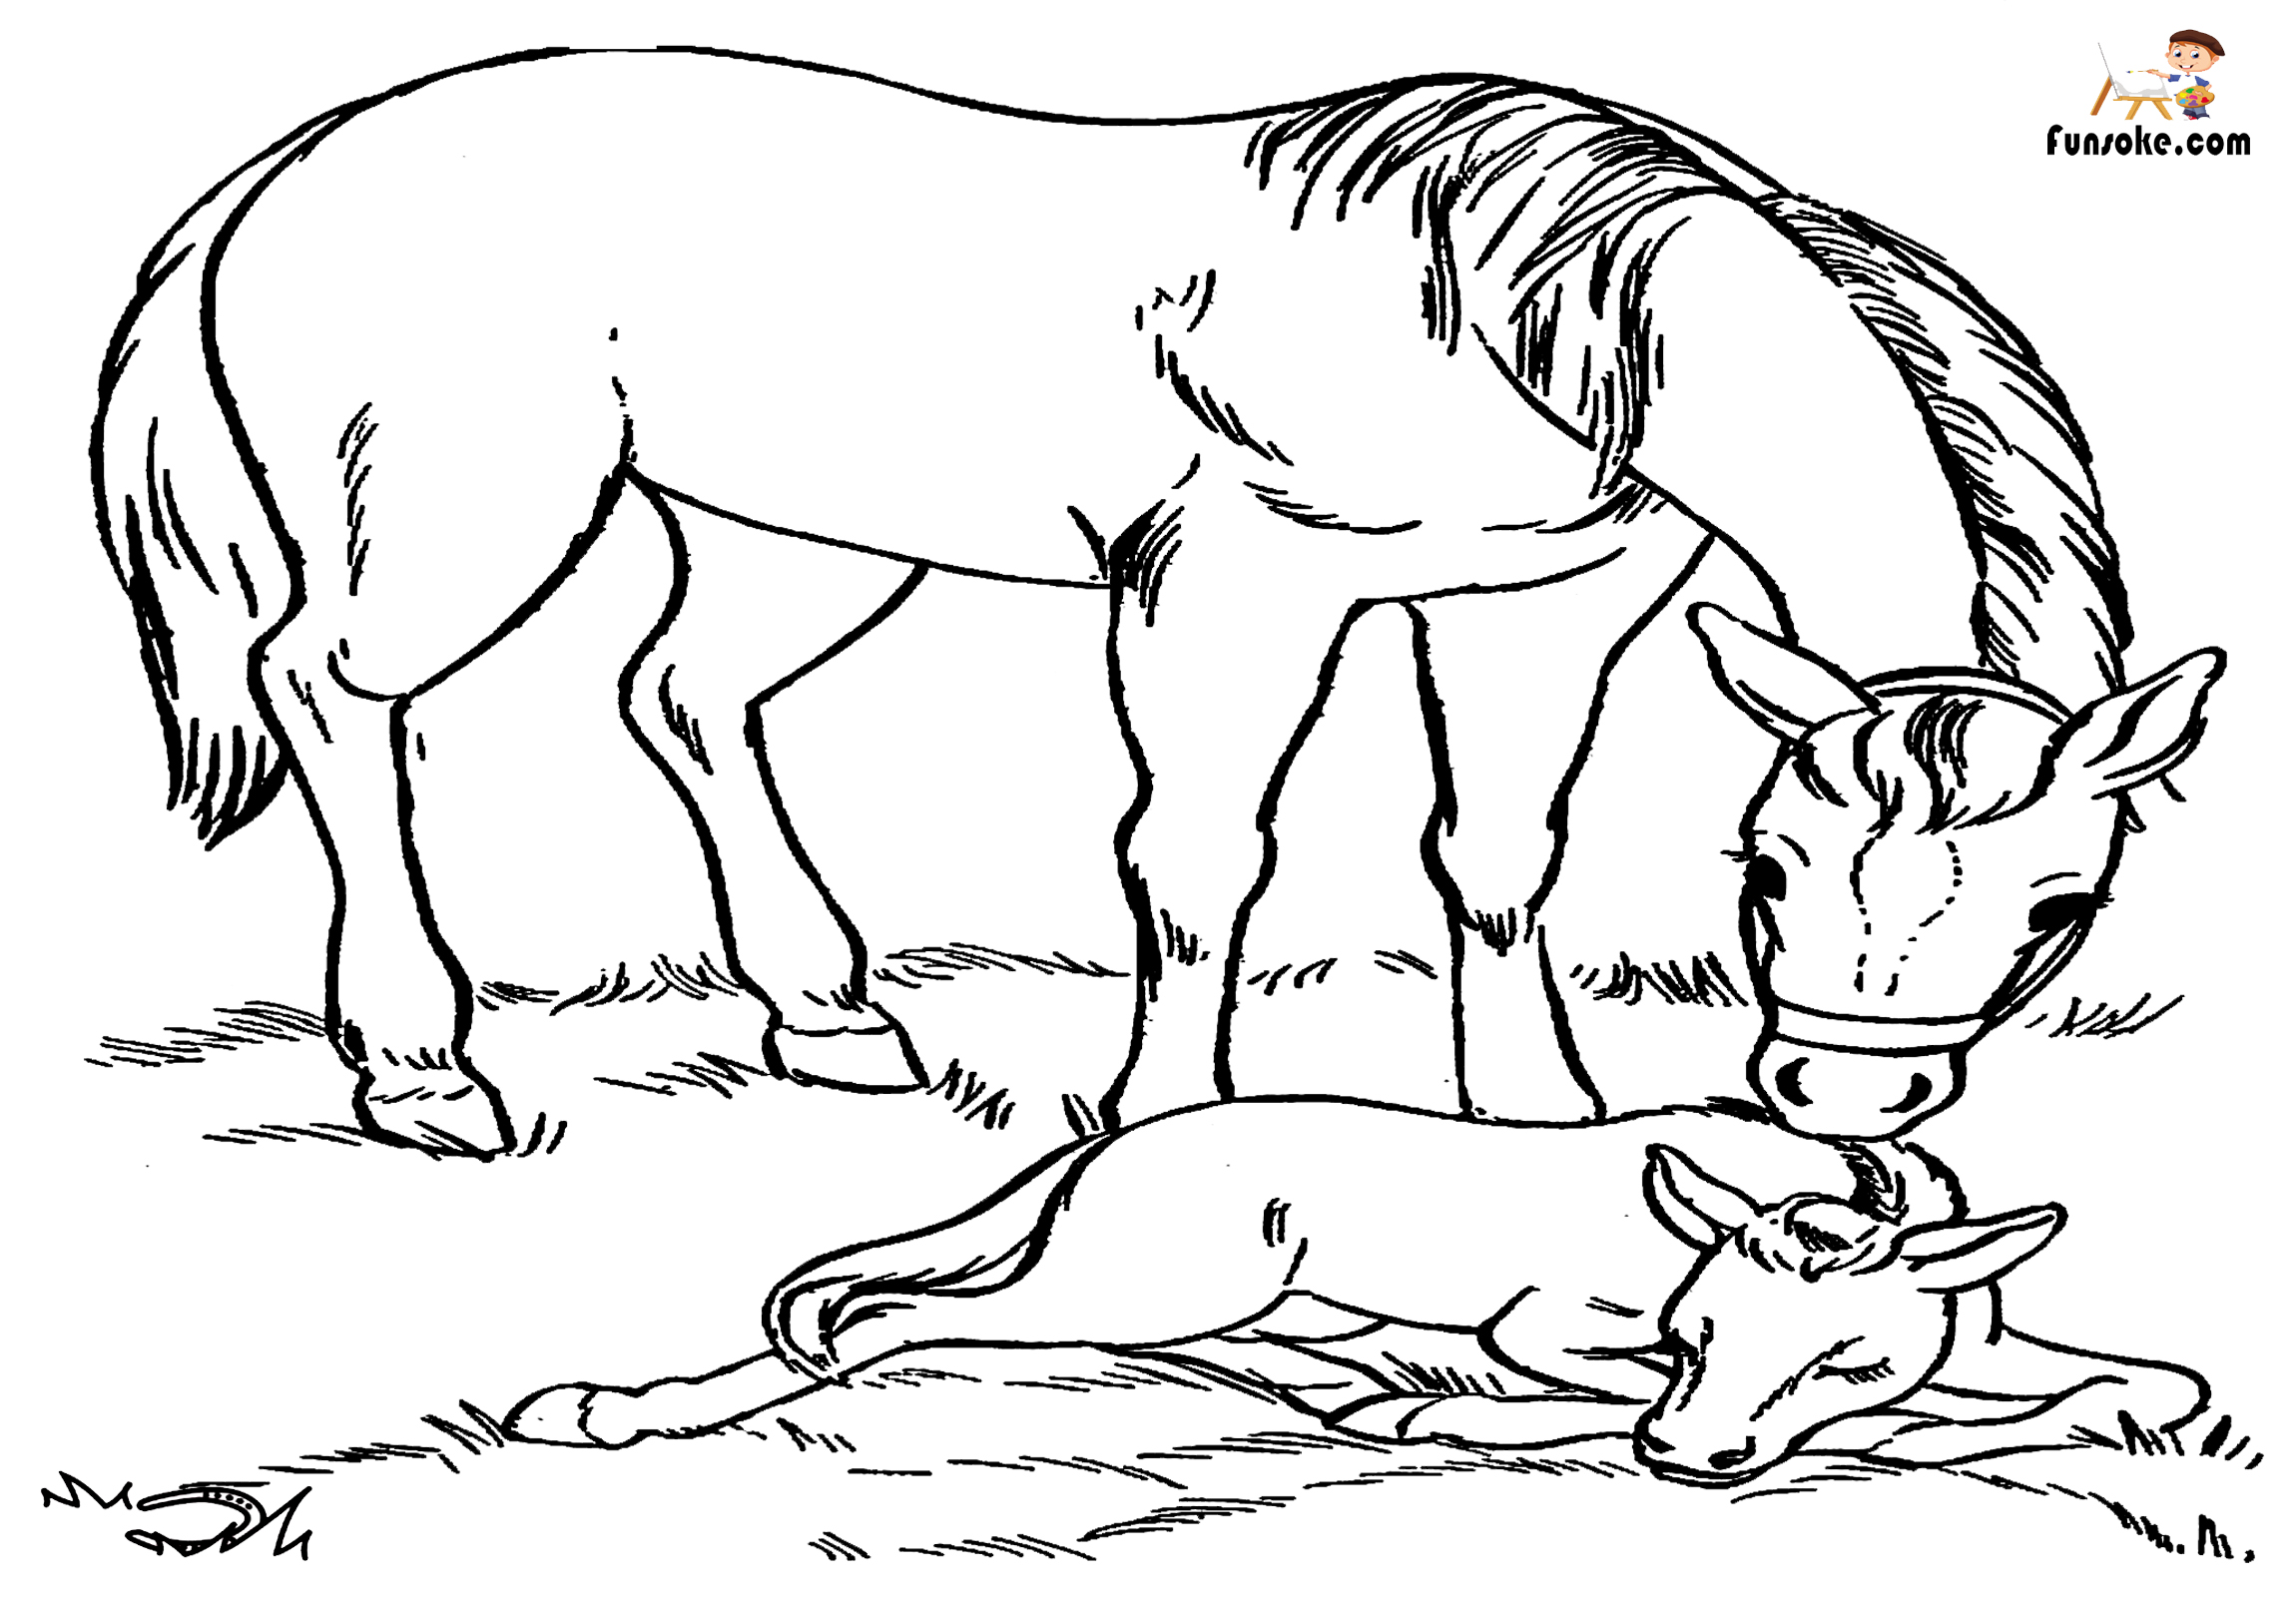 kids horse coloring pages icolor quotlittle little kids coloringquot horse coloring pages kids coloring pages horse